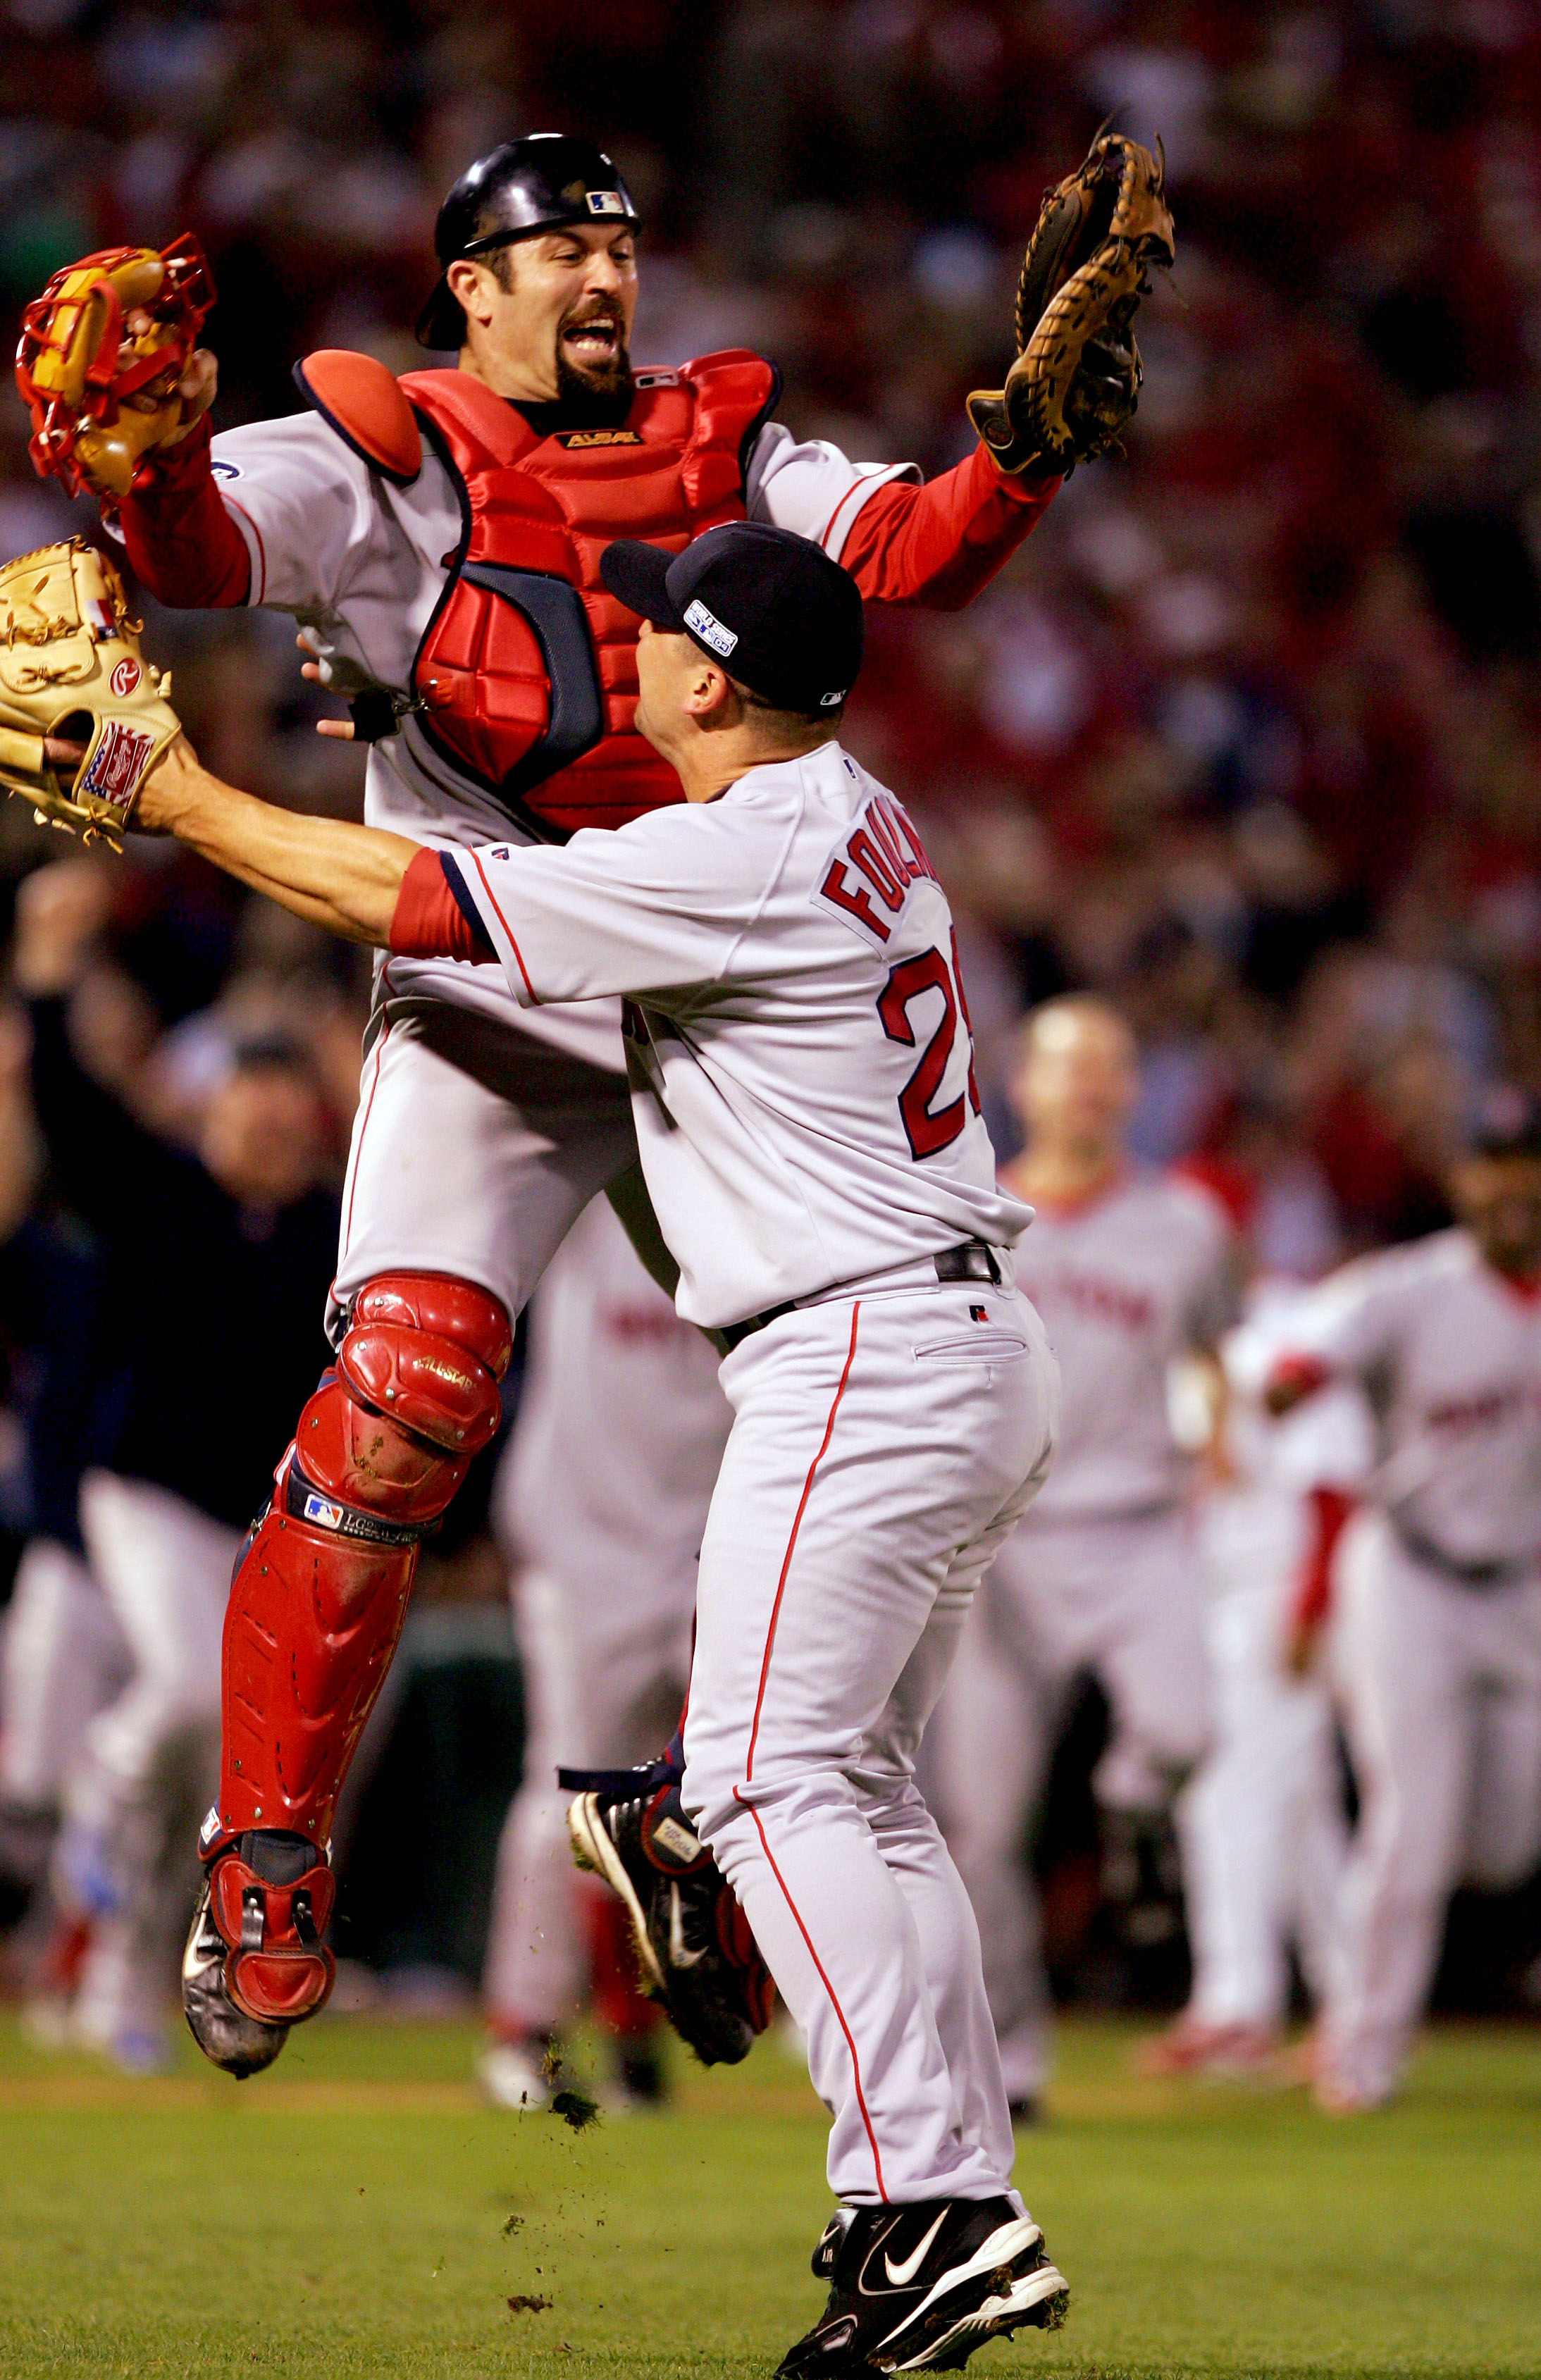 ST LOUIS - OCTOBER 27:  Jason Varitek #33 and Keith Foulke #29 of the Boston Red Sox celebrate after defeating the St. Louis Cardinals 3-0 in game four of the World Series on October 27, 2004 at Busch Stadium in St. Louis, Missouri.(Photo by Jed Jacobsohn